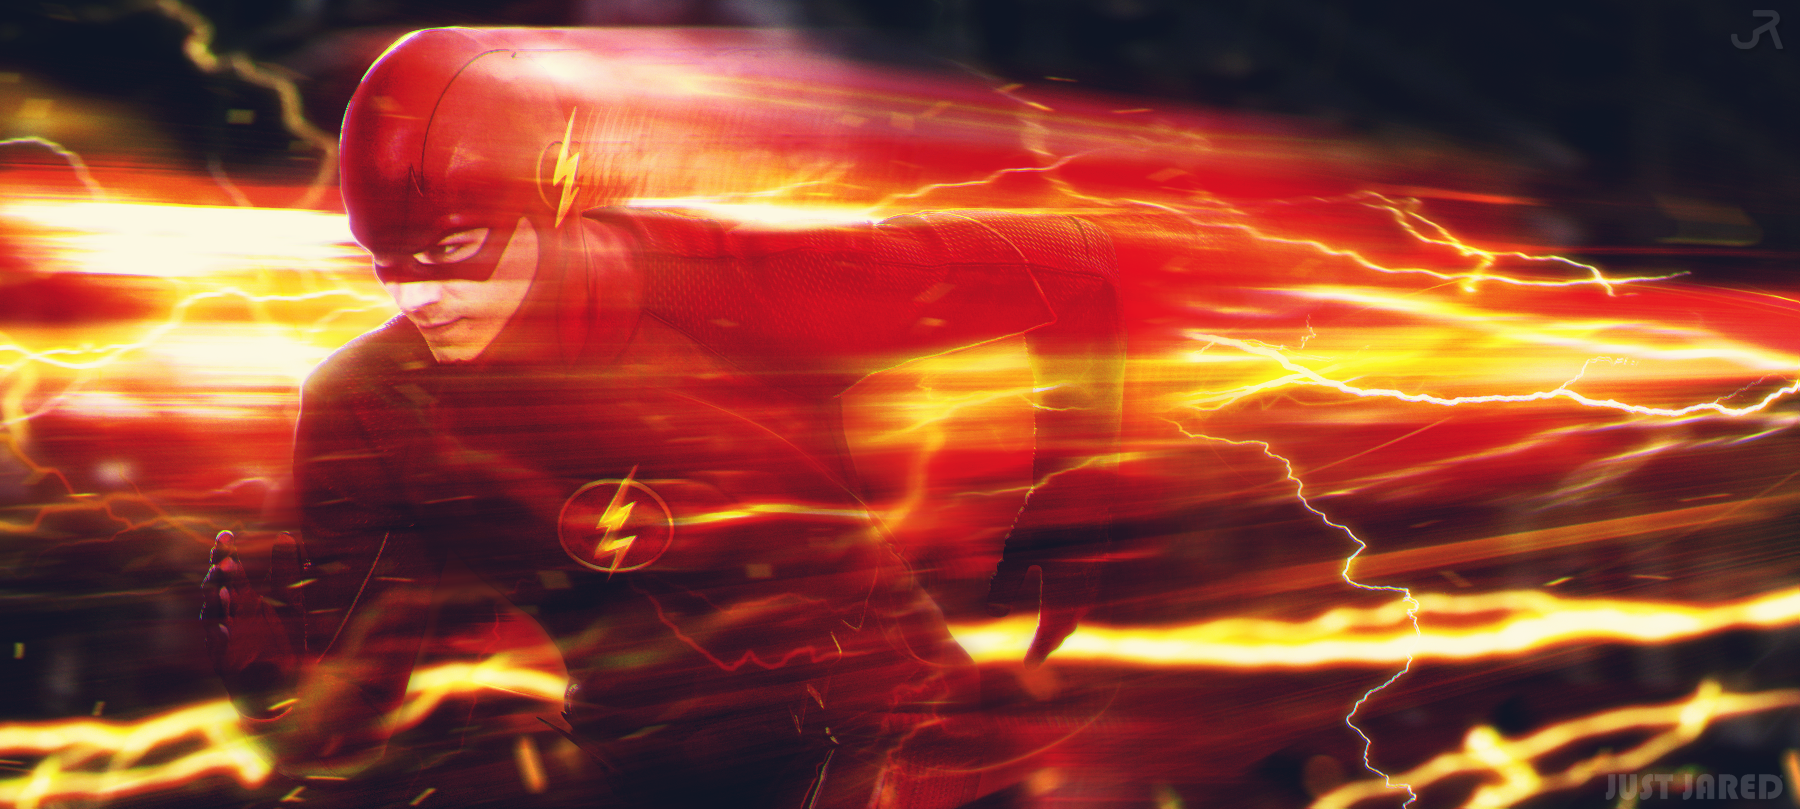 Pin By Mark On Gifs Flash Wallpaper The Flash Flash